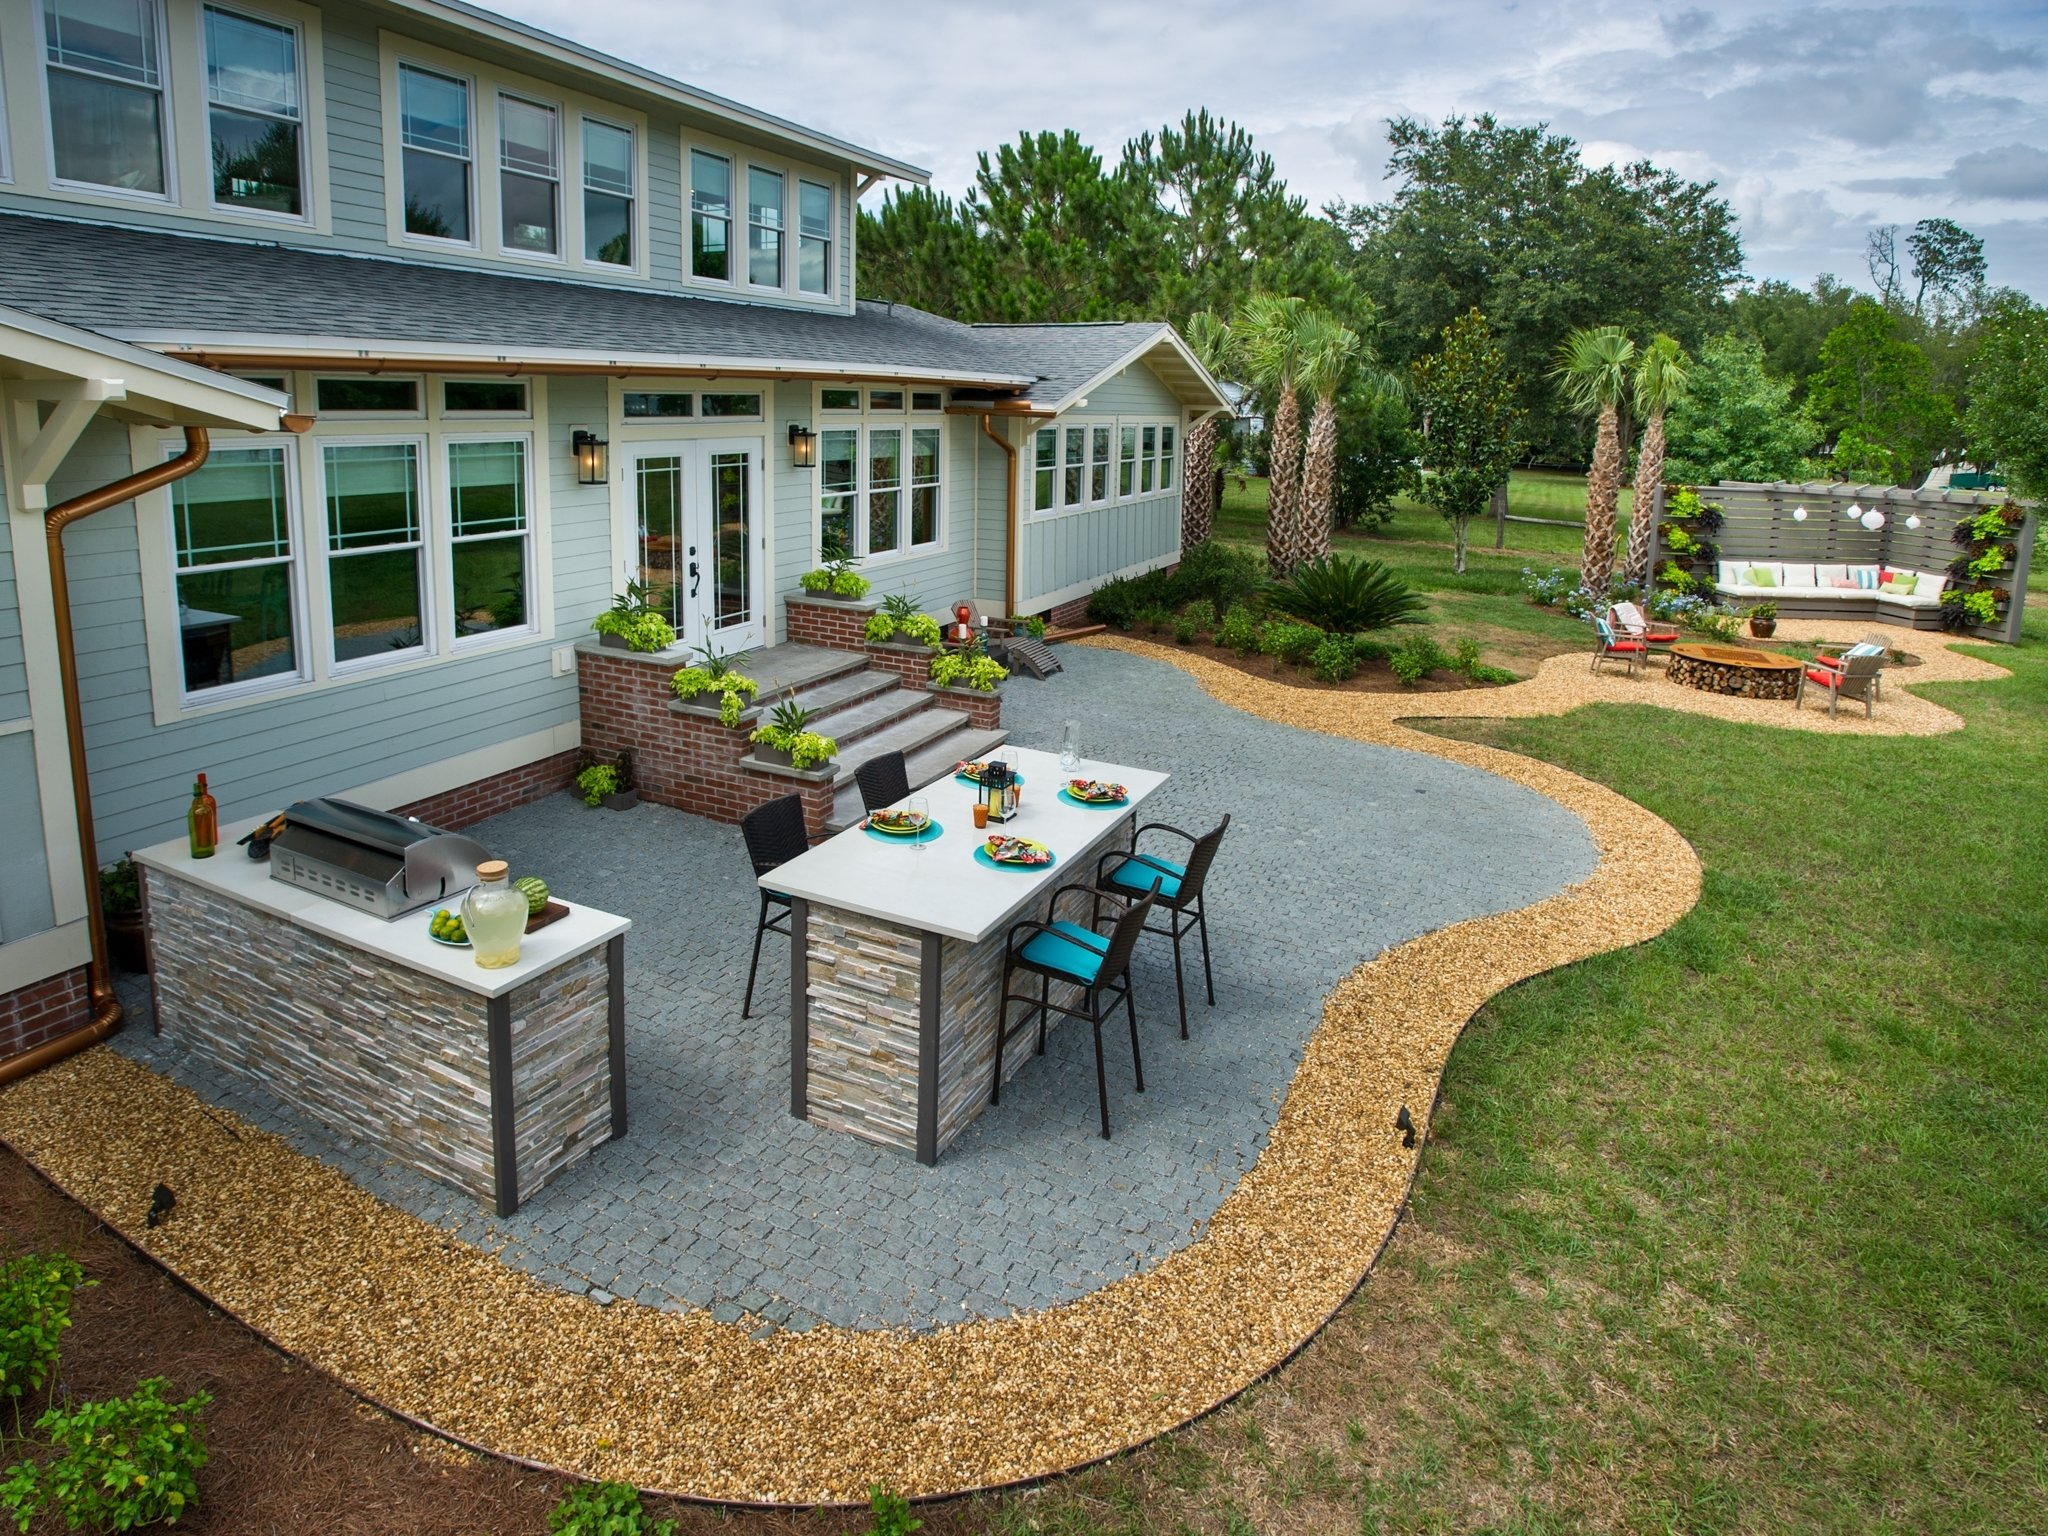 10 Ideal Do It Yourself Patio Ideas inexpensive diy patio ideas building dma homes 75174 2020